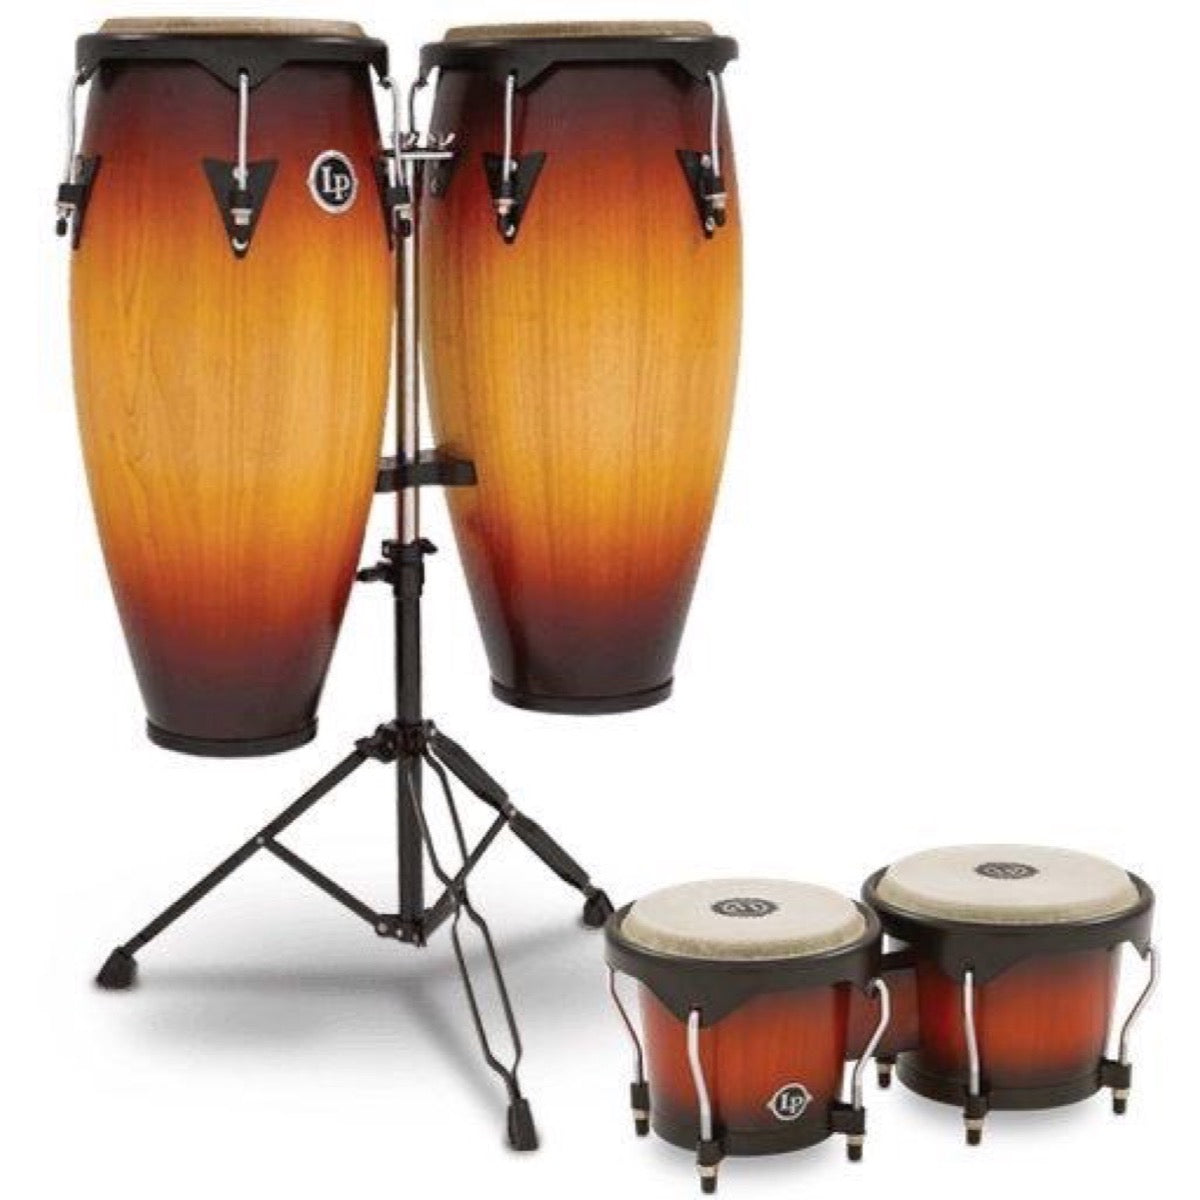 Latin Percussion 646 City Series Congas, Vintage Sunburst, with Bongo and Mount Package, 10 Inch and 11 Inch